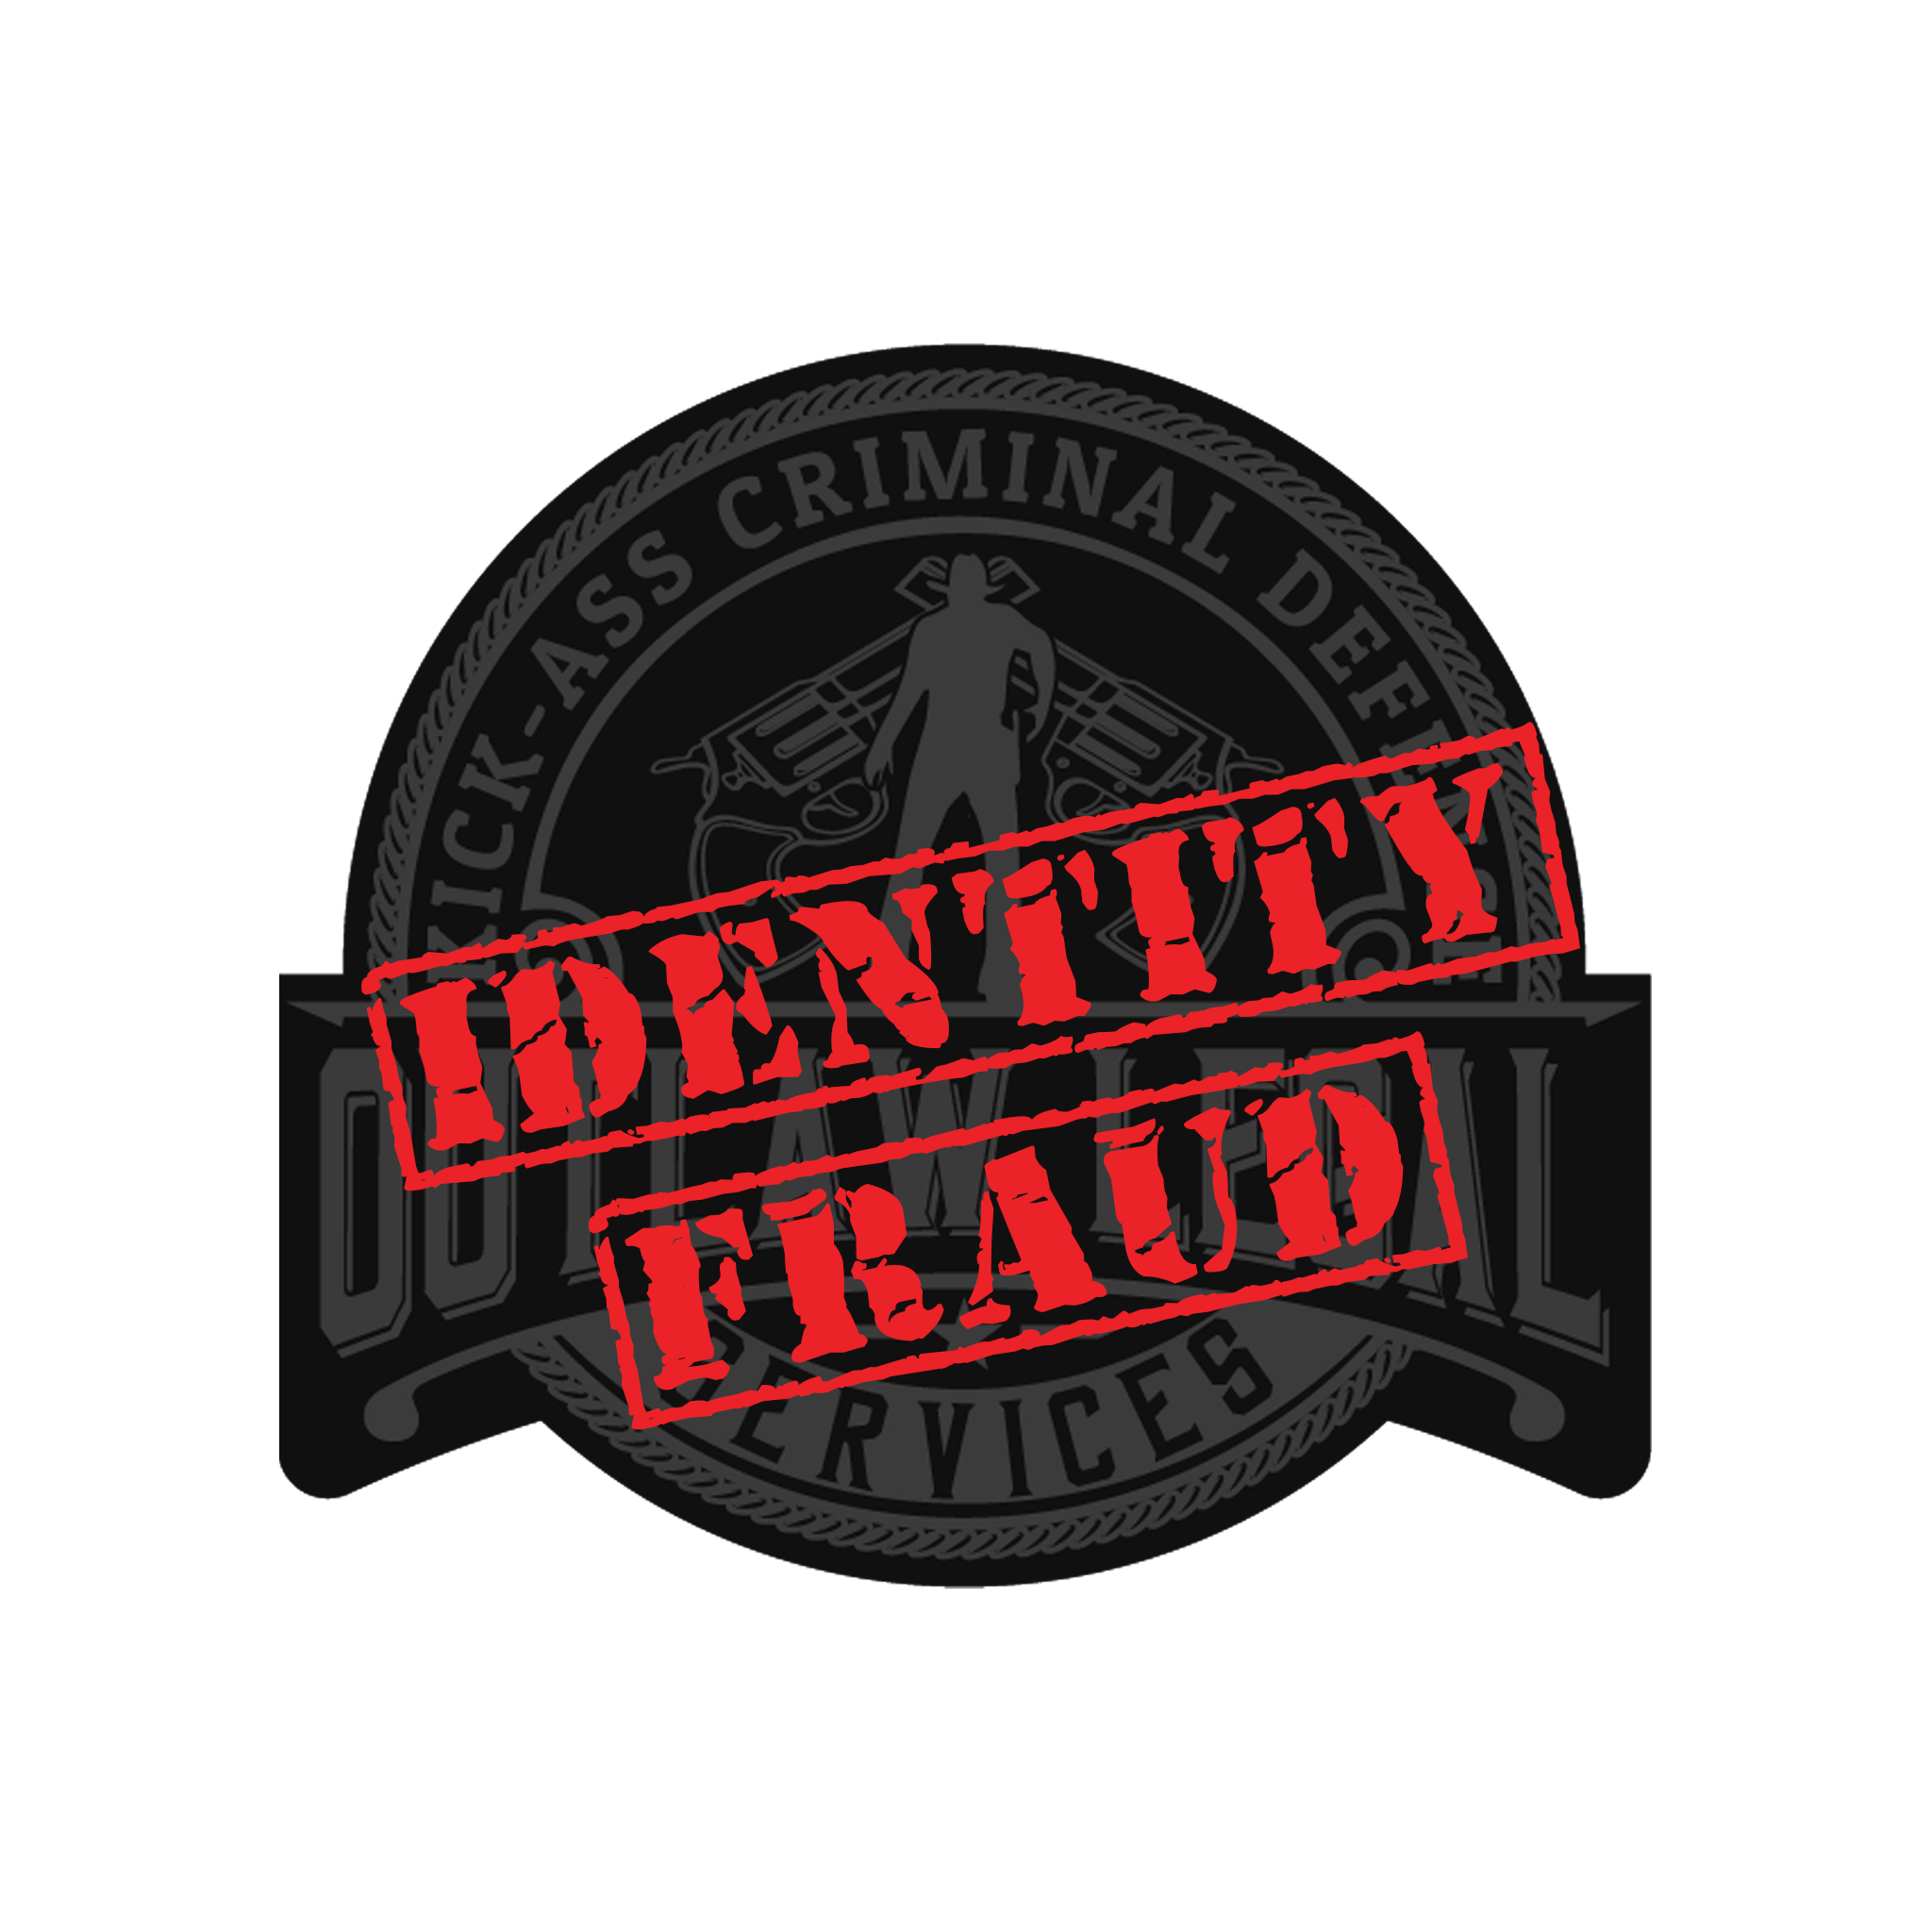 identity fraud forgery identity theftCriminal Defense Attorney Lawyer Utah Salt Lake City ogden provo st George